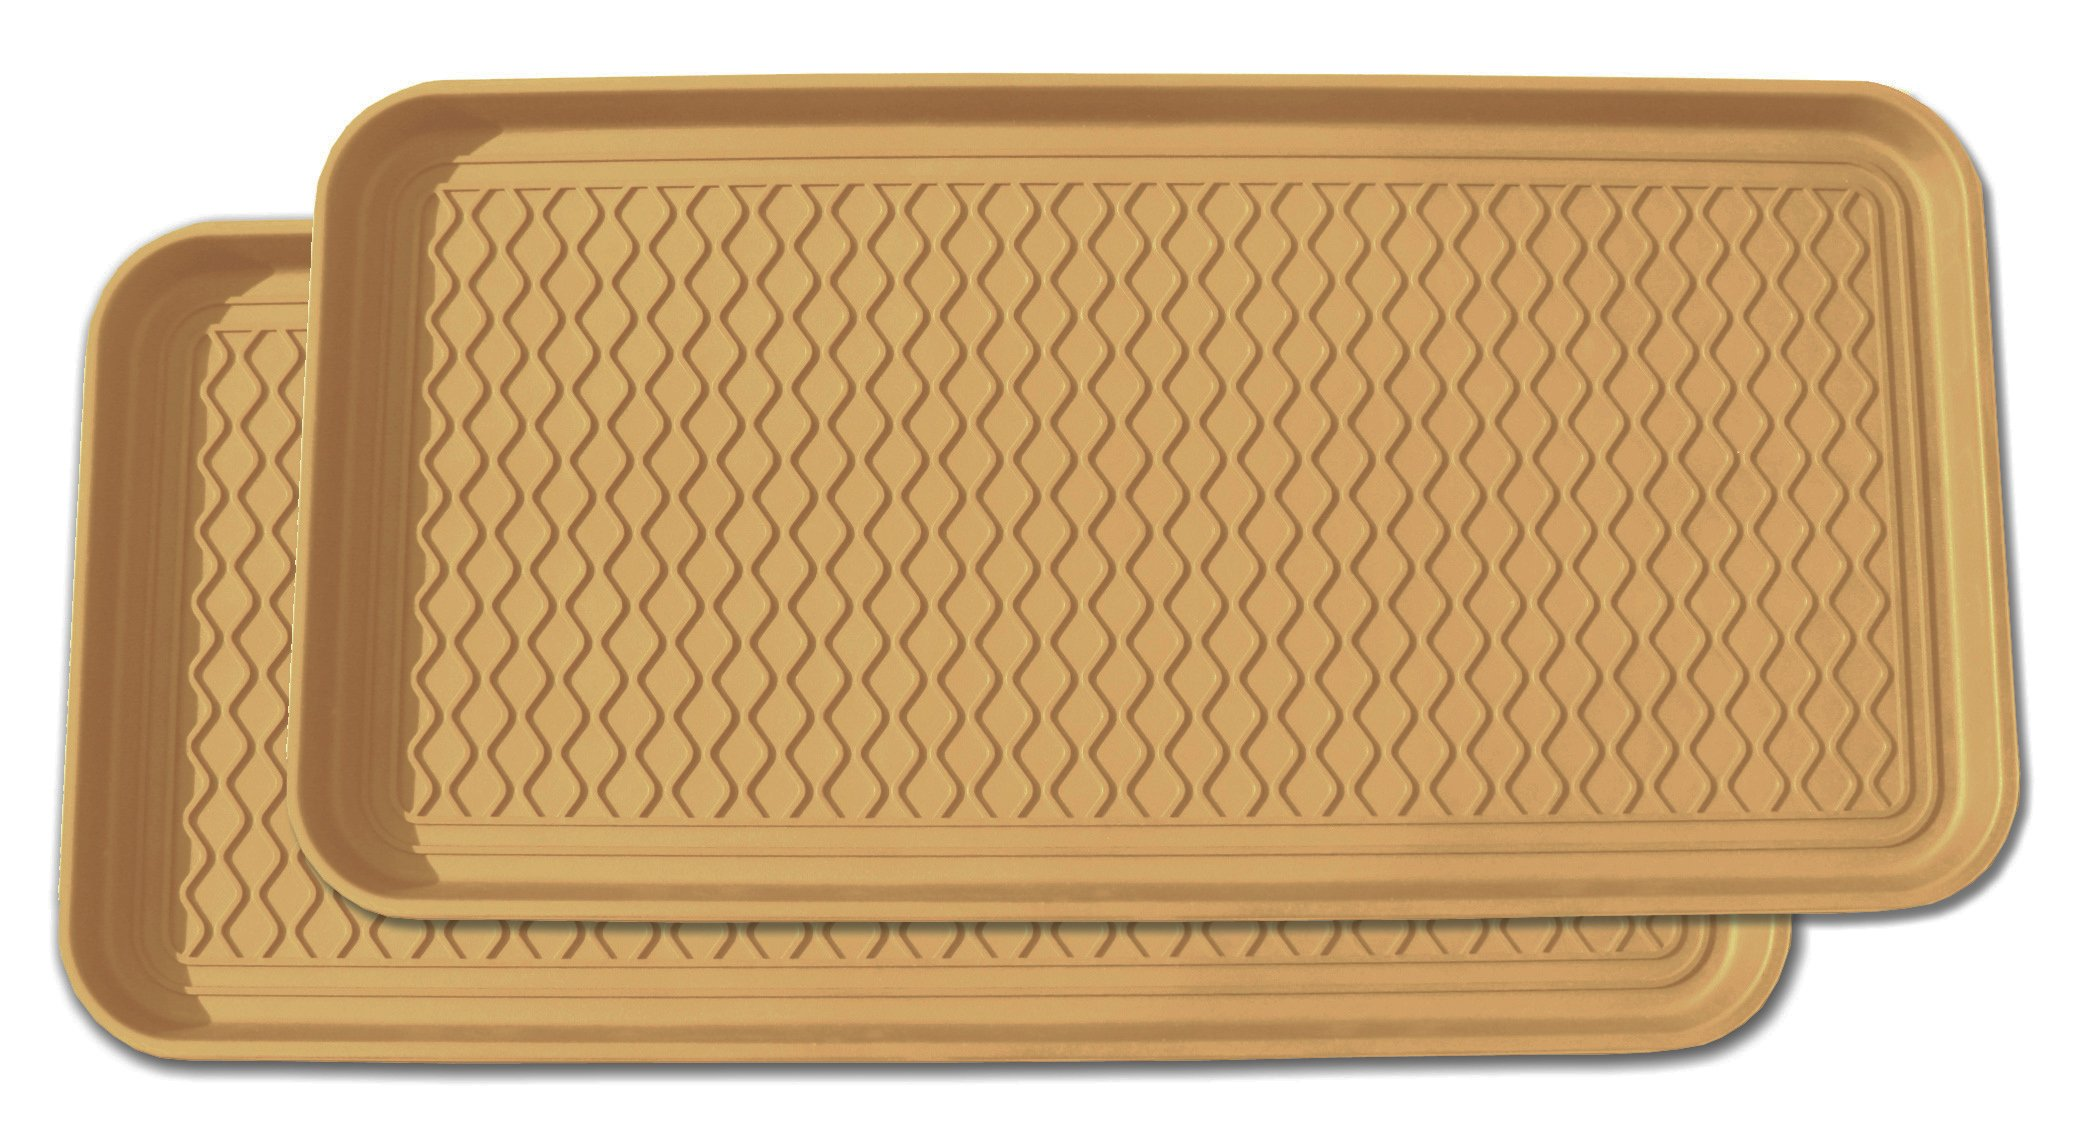 Multi-purpose Tray, for Boots, Shoes, Paint, Pets, Garden, Laundry, Kitchen, Car, Entryway, Garage, Mudroom. Floor Protection, Cat Litter and Dog Feeding Mat - 30x15x1.2 Inches - Beige, Set of 2 by Alex Carseon